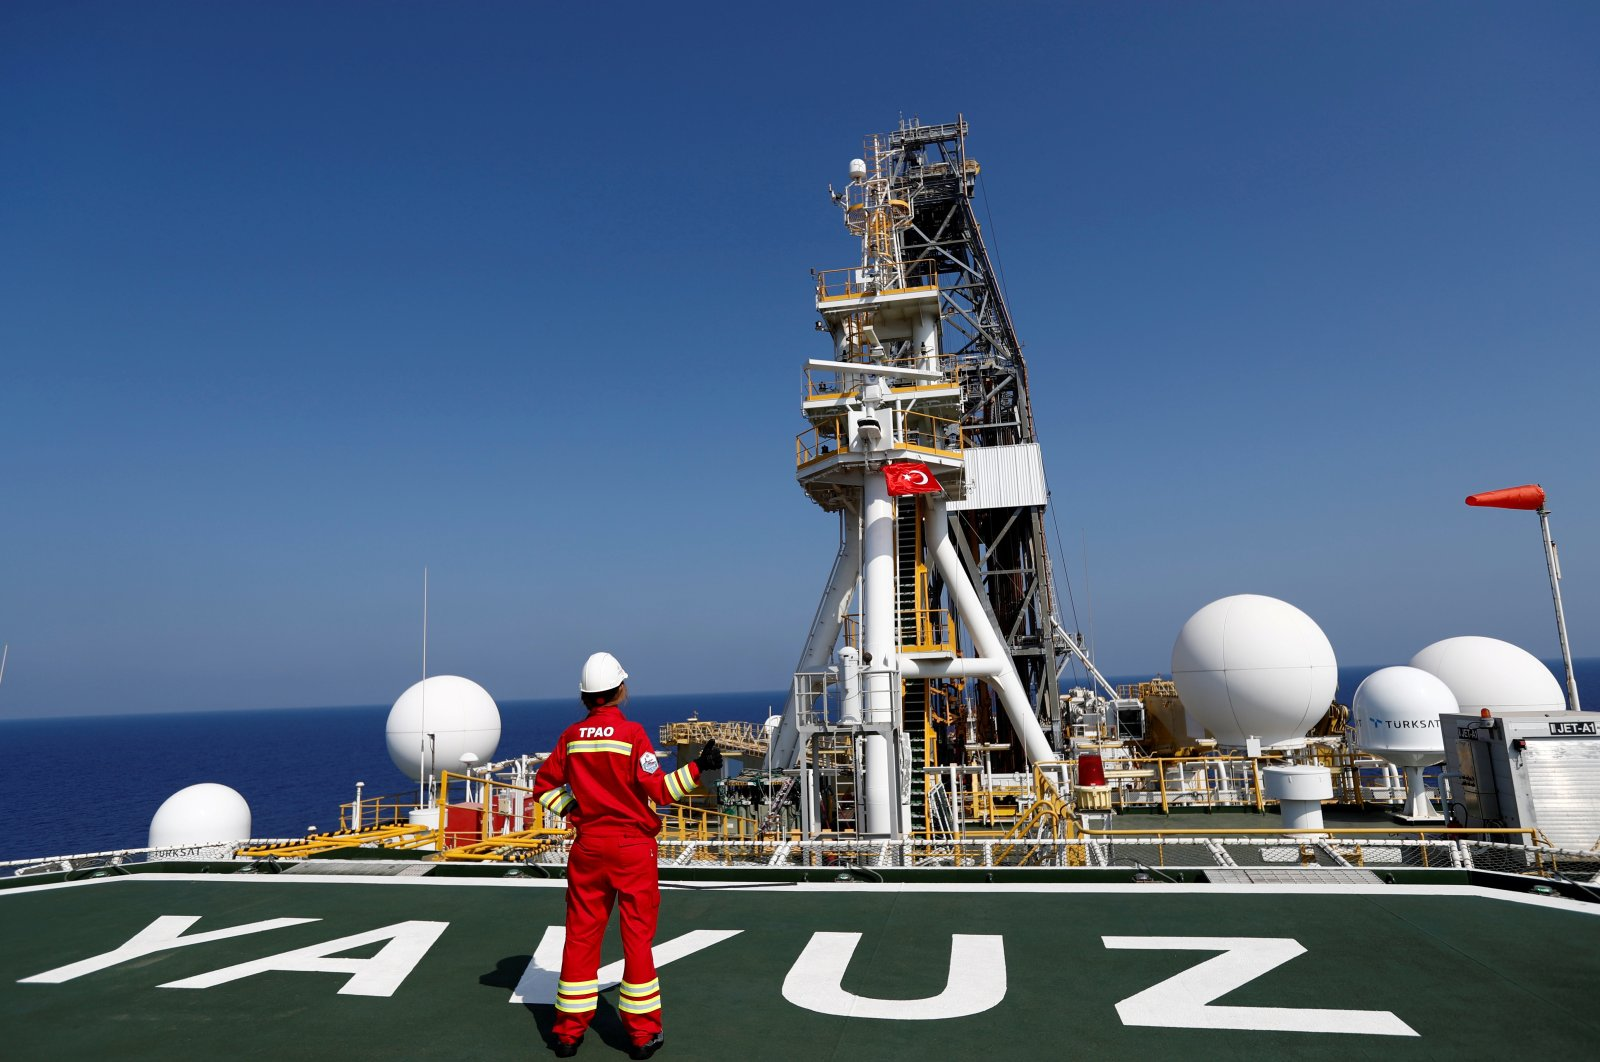 A Turkish Petroleum Corporation (TPAO) engineer poses on the helipad of Turkish drilling vessel Yavuz in the Eastern Mediterranean, Aug. 6, 2019. (Reuters Photo)